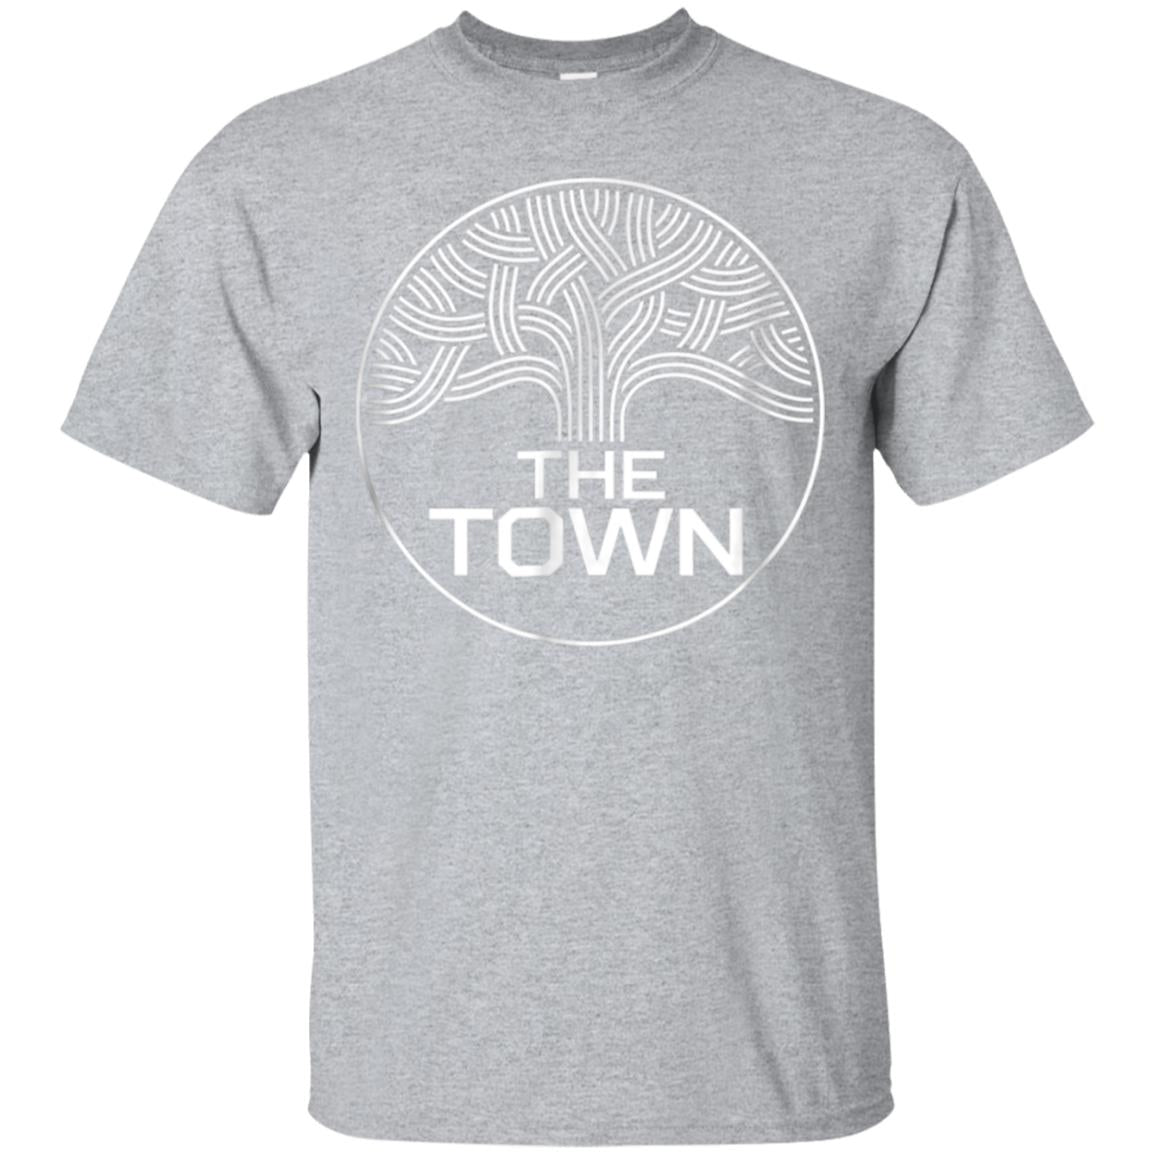 Oakland California Shirt - The Town Oak Tree 99promocode